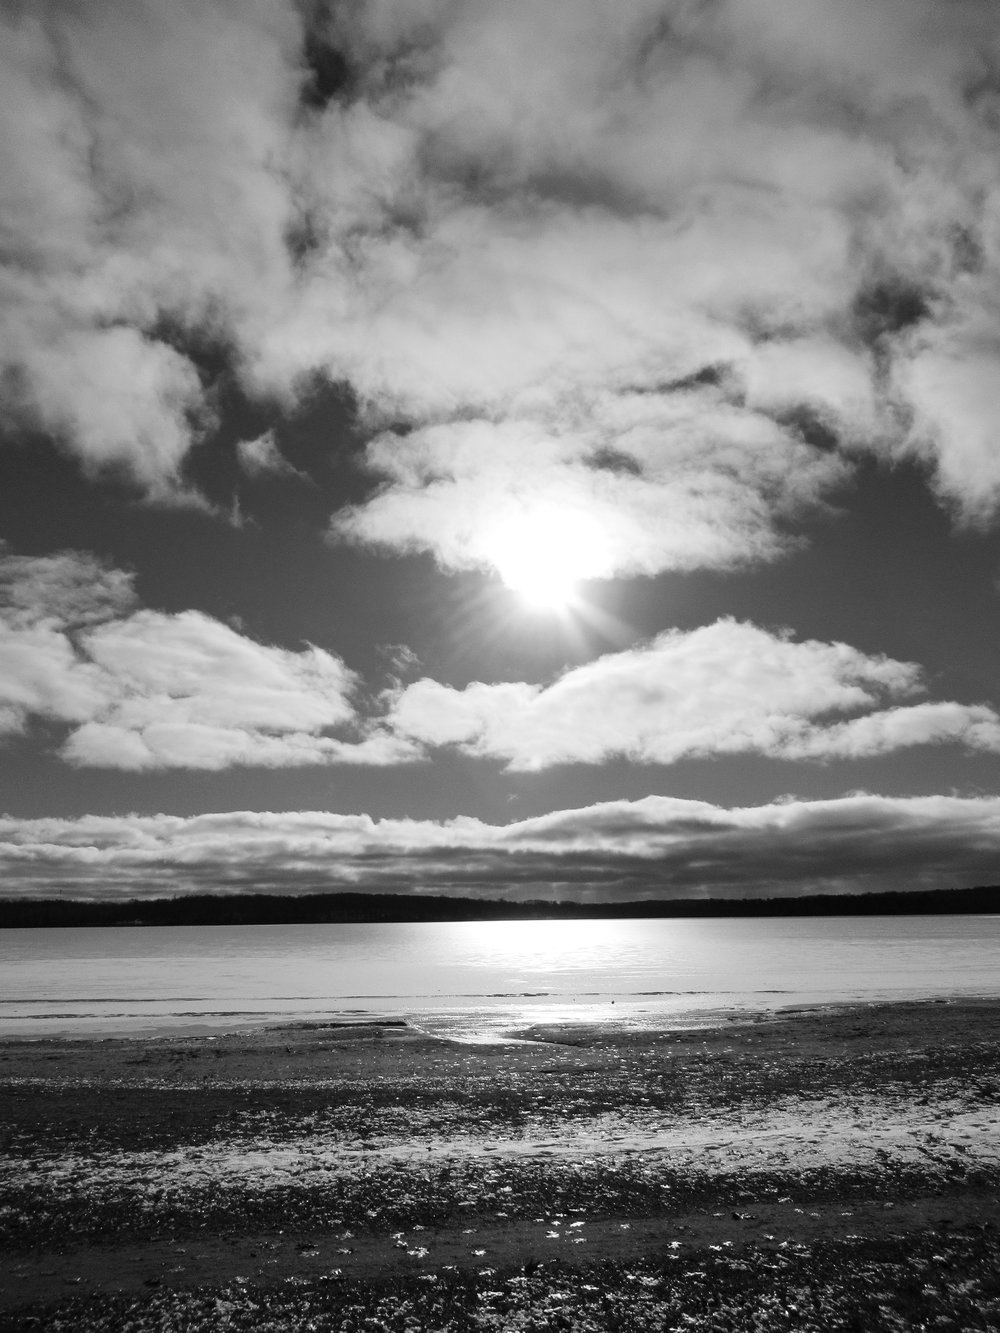 Water Sunset BW 2.jpg